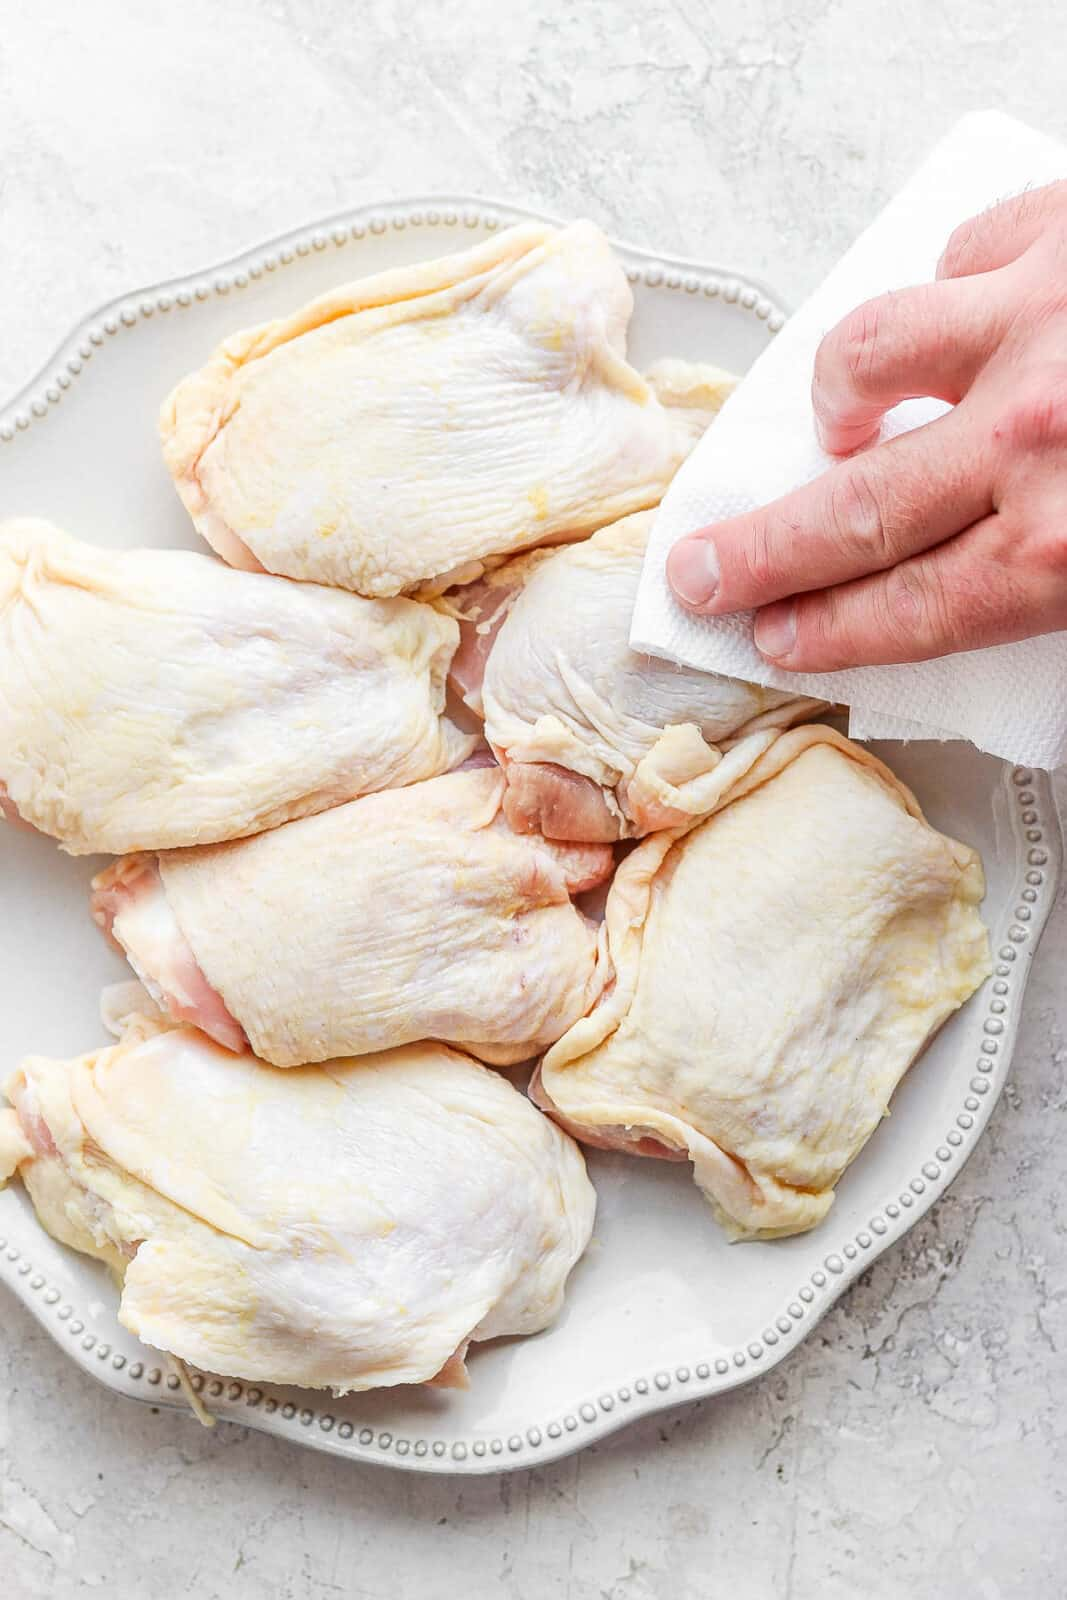 A plate of chicken thighs with someone patting them dry with a clean paper towel.